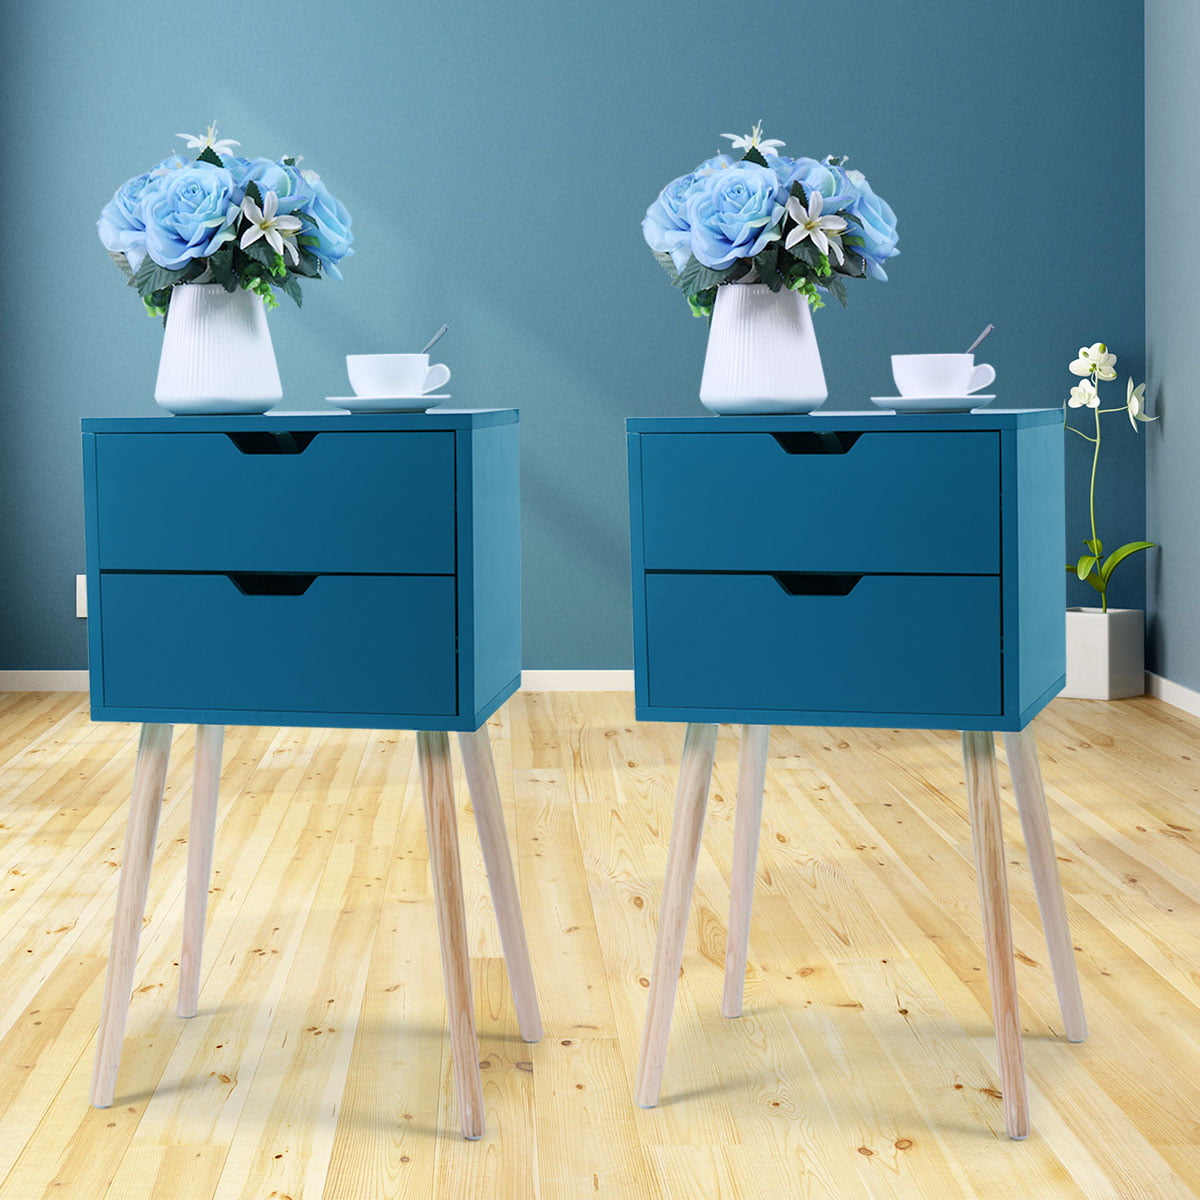 Image of: Jaxpety Set Of 2 Mid Century Modern Nightstand Bedside Table Sofa End Table Bedroom Decor 2 Drawers Storage With Solid Wood Legs Blue Walmart Com Walmart Com